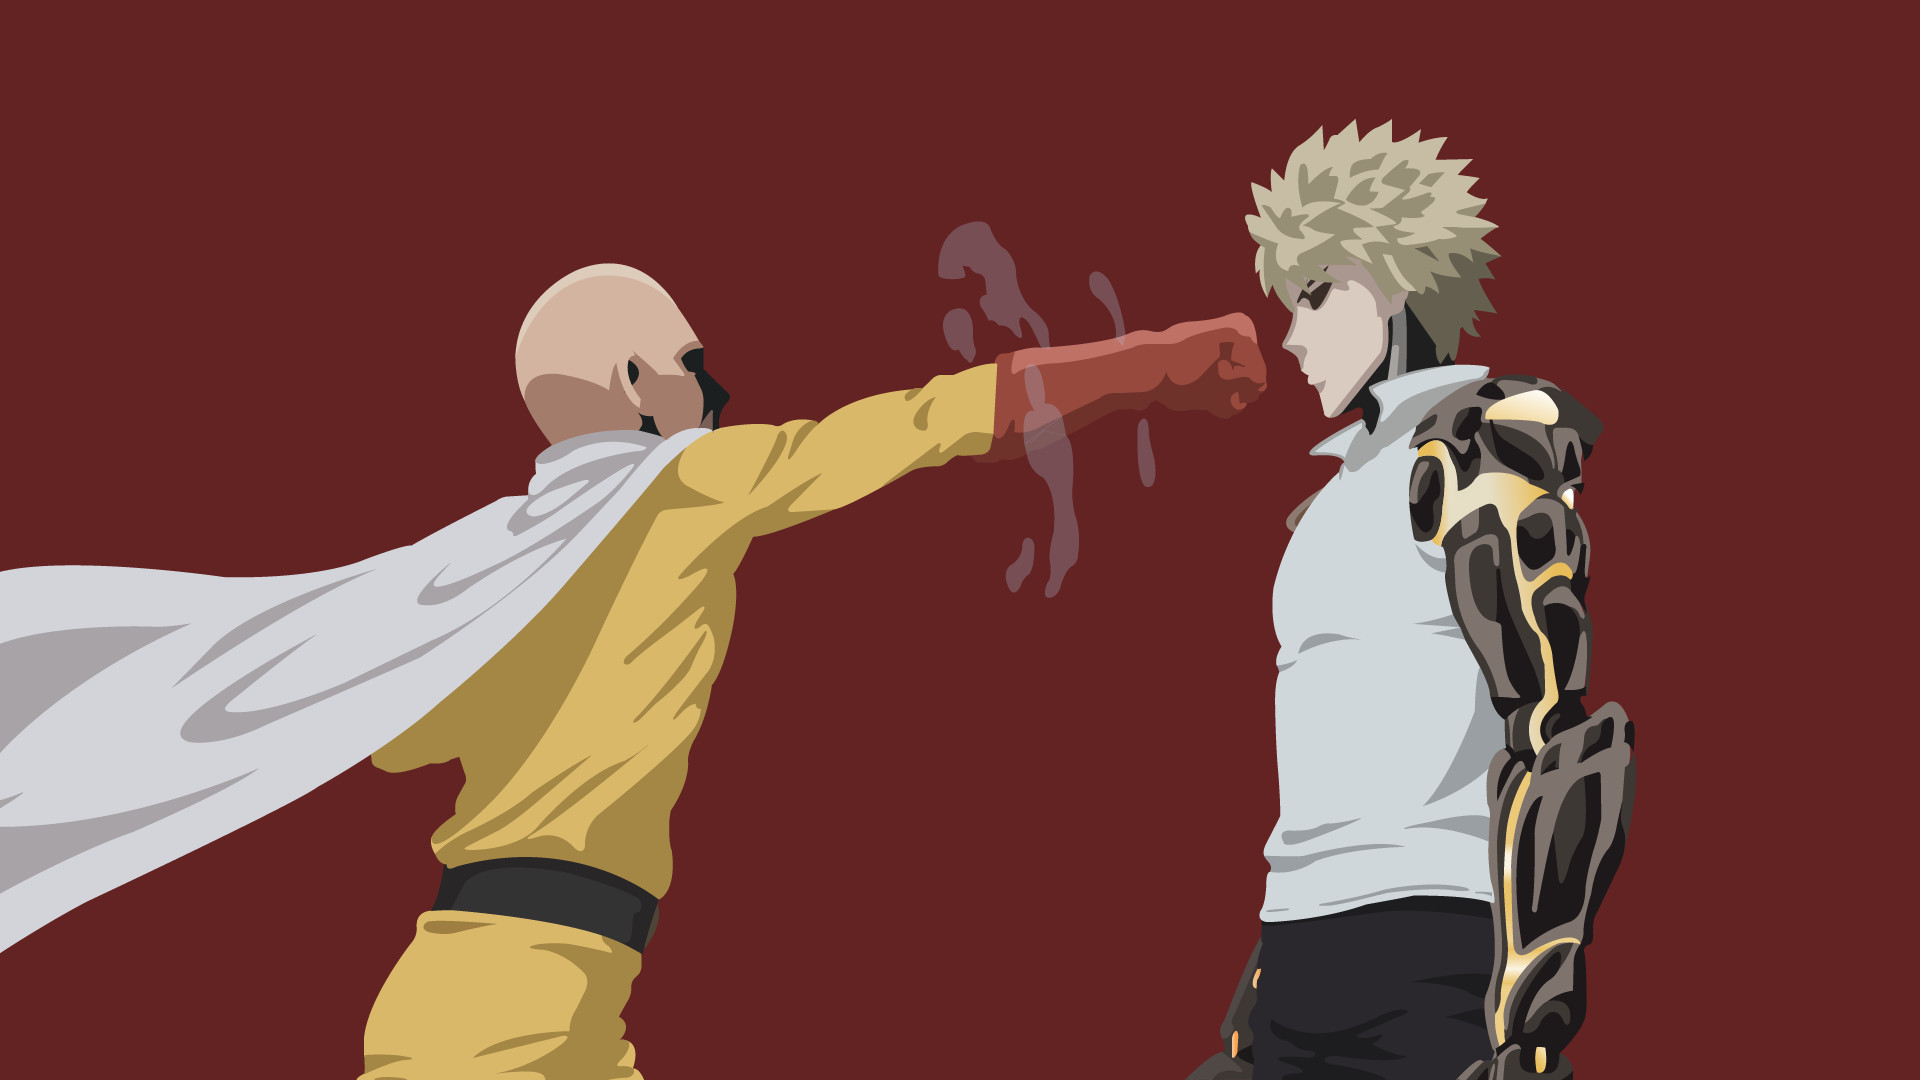 One Punch Man Wallpaper 1920x1080 74 Images